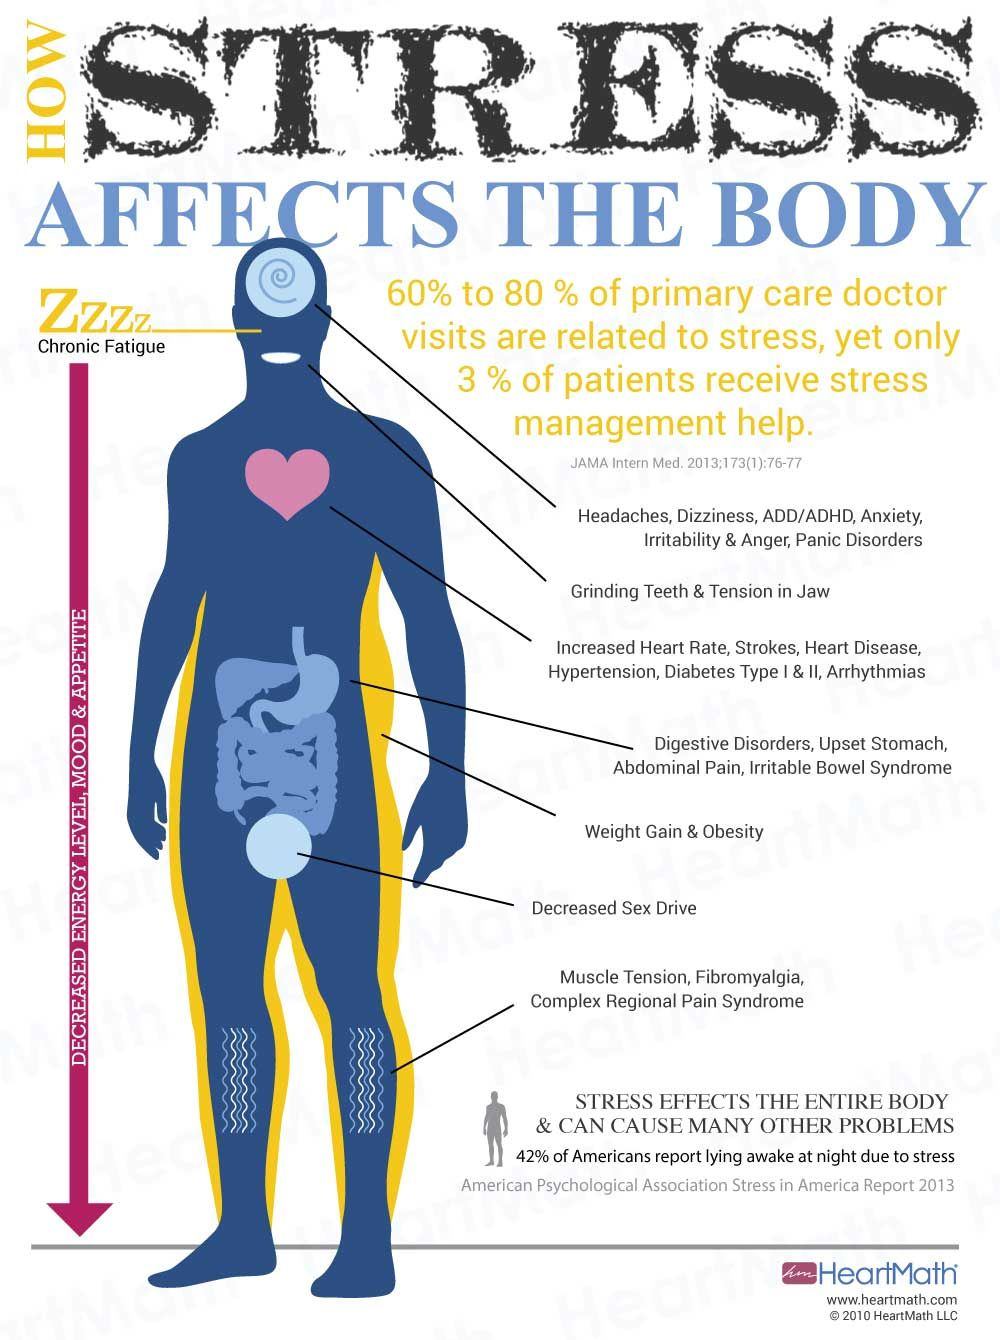 Top tips to staying stress free in the workplace infographic - 5 Ways To Reduce Stress Naturally This Is What Happens To Your Body When Youre Stressed Shocking Image Healthy Wild And Free